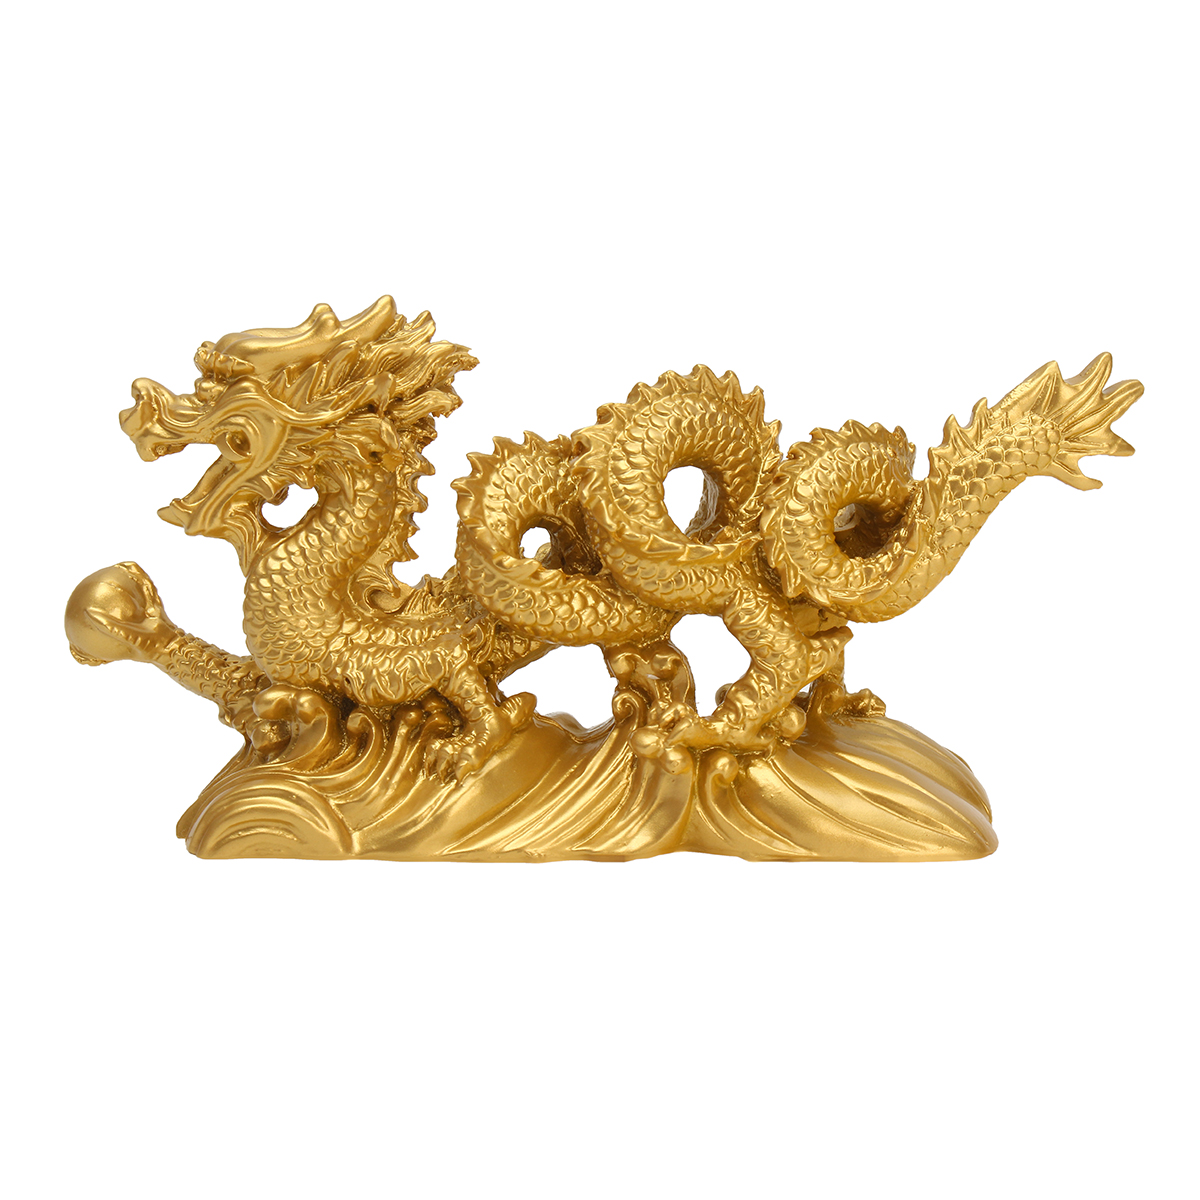 Resin Gold Dragon Figurine Statue Ornaments Chinese Geomancy Home Office Decoration